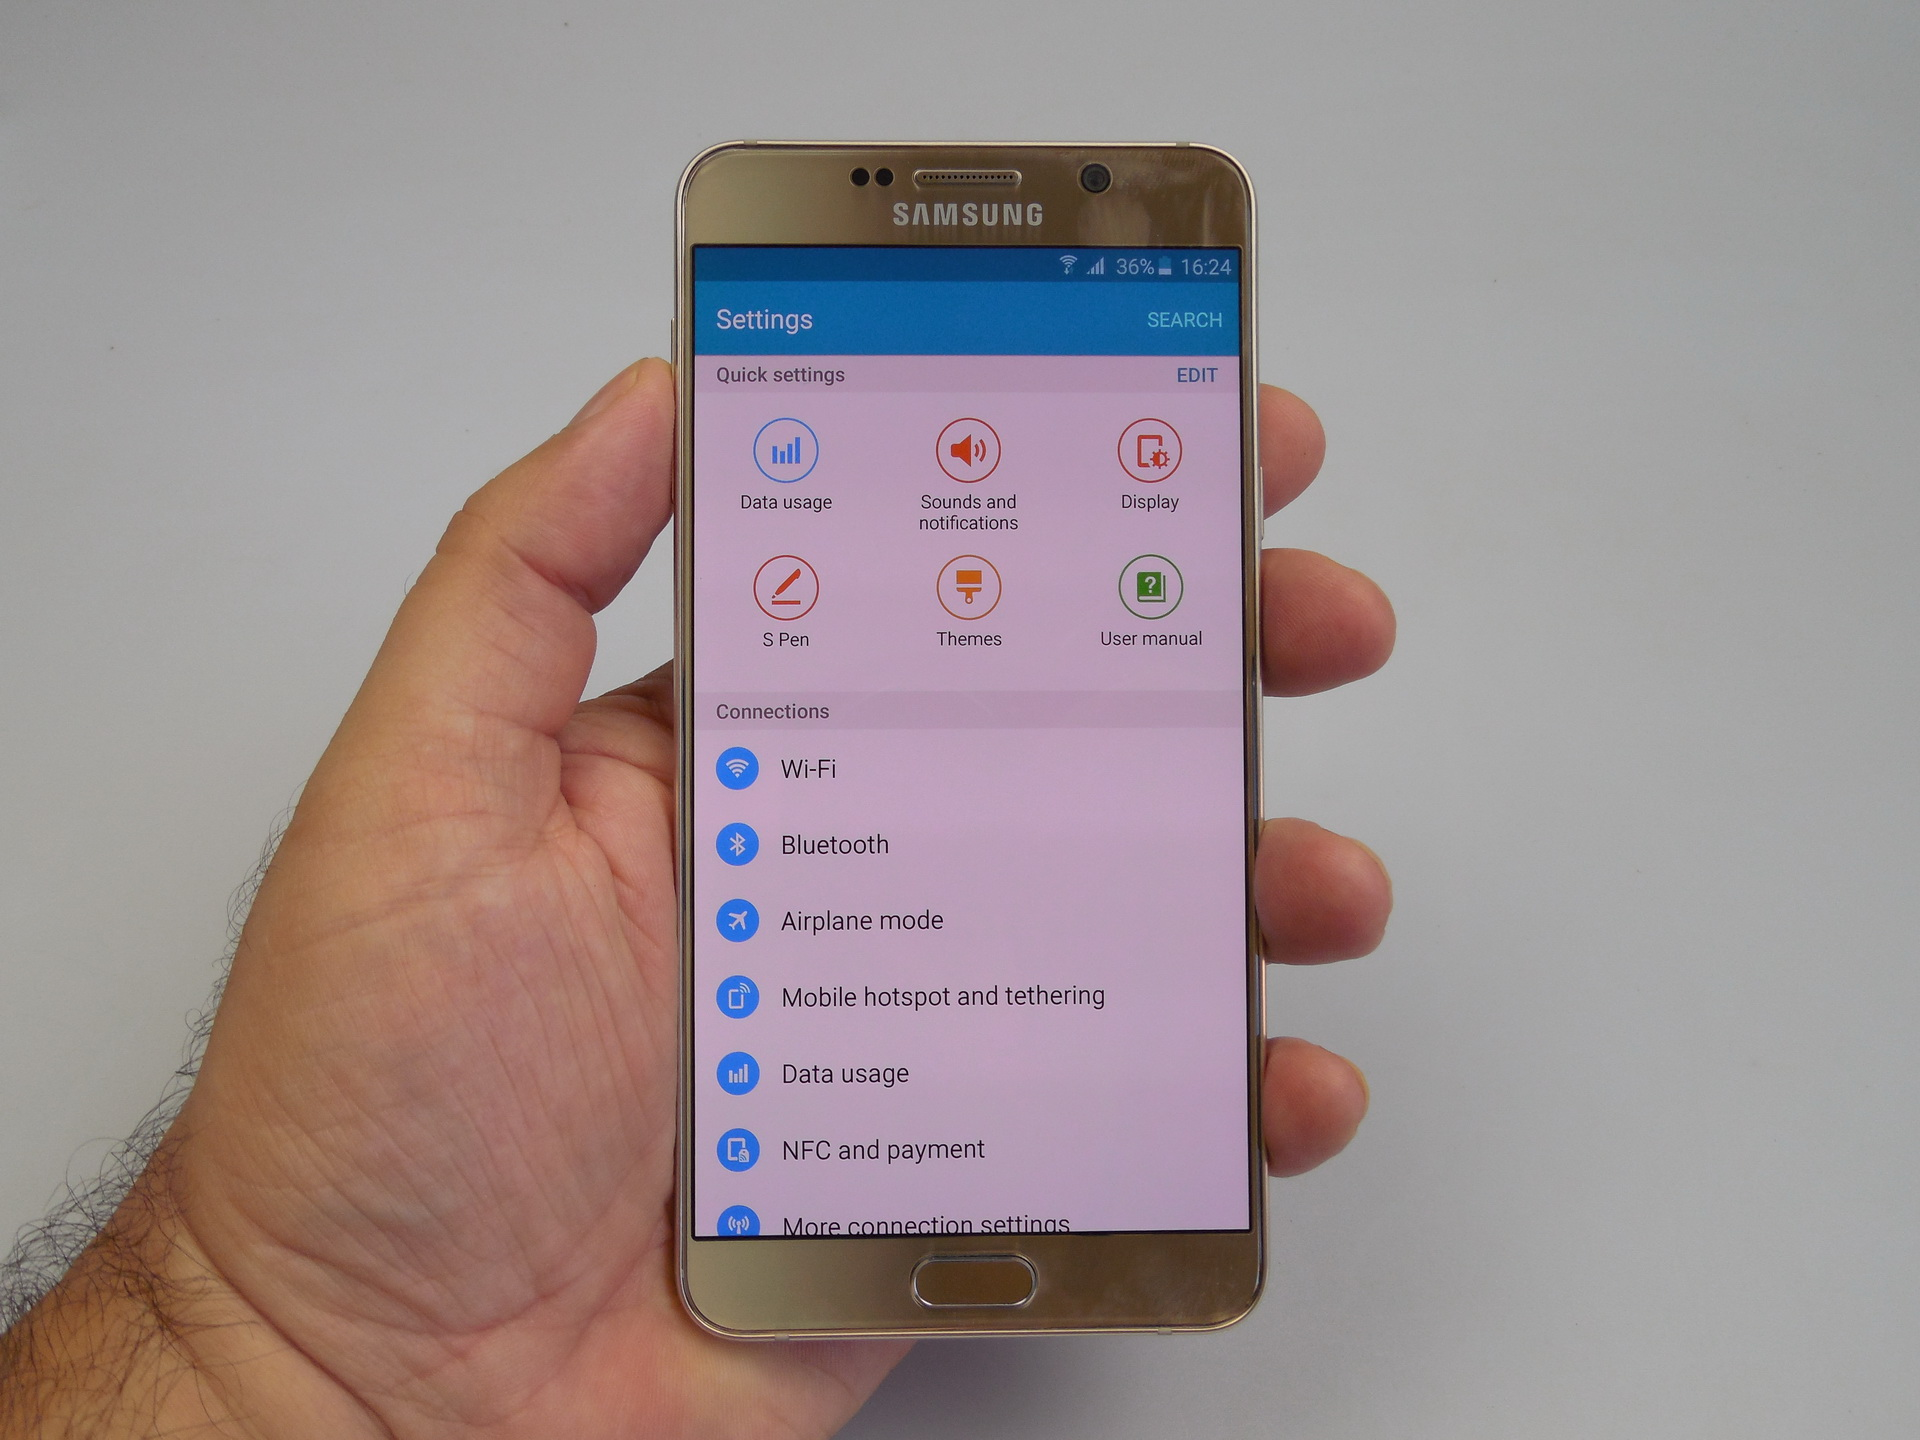 How to use scrapbook in samsung - An Error Occurred